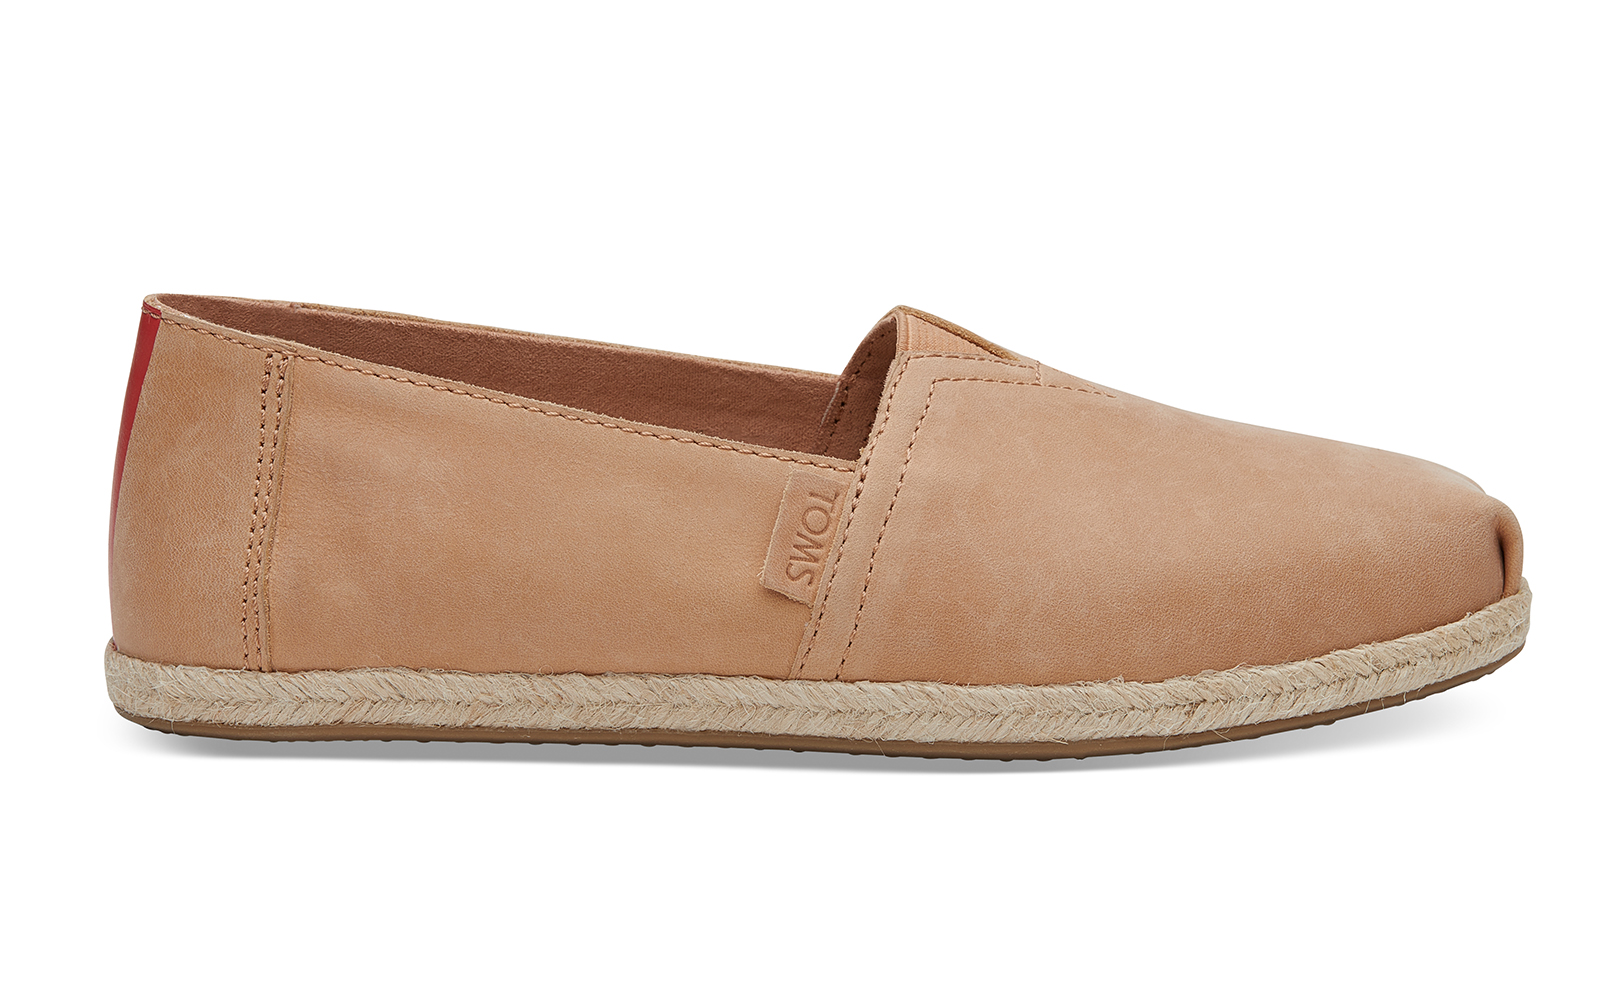 Clare V. Honey Leather Women's Classics